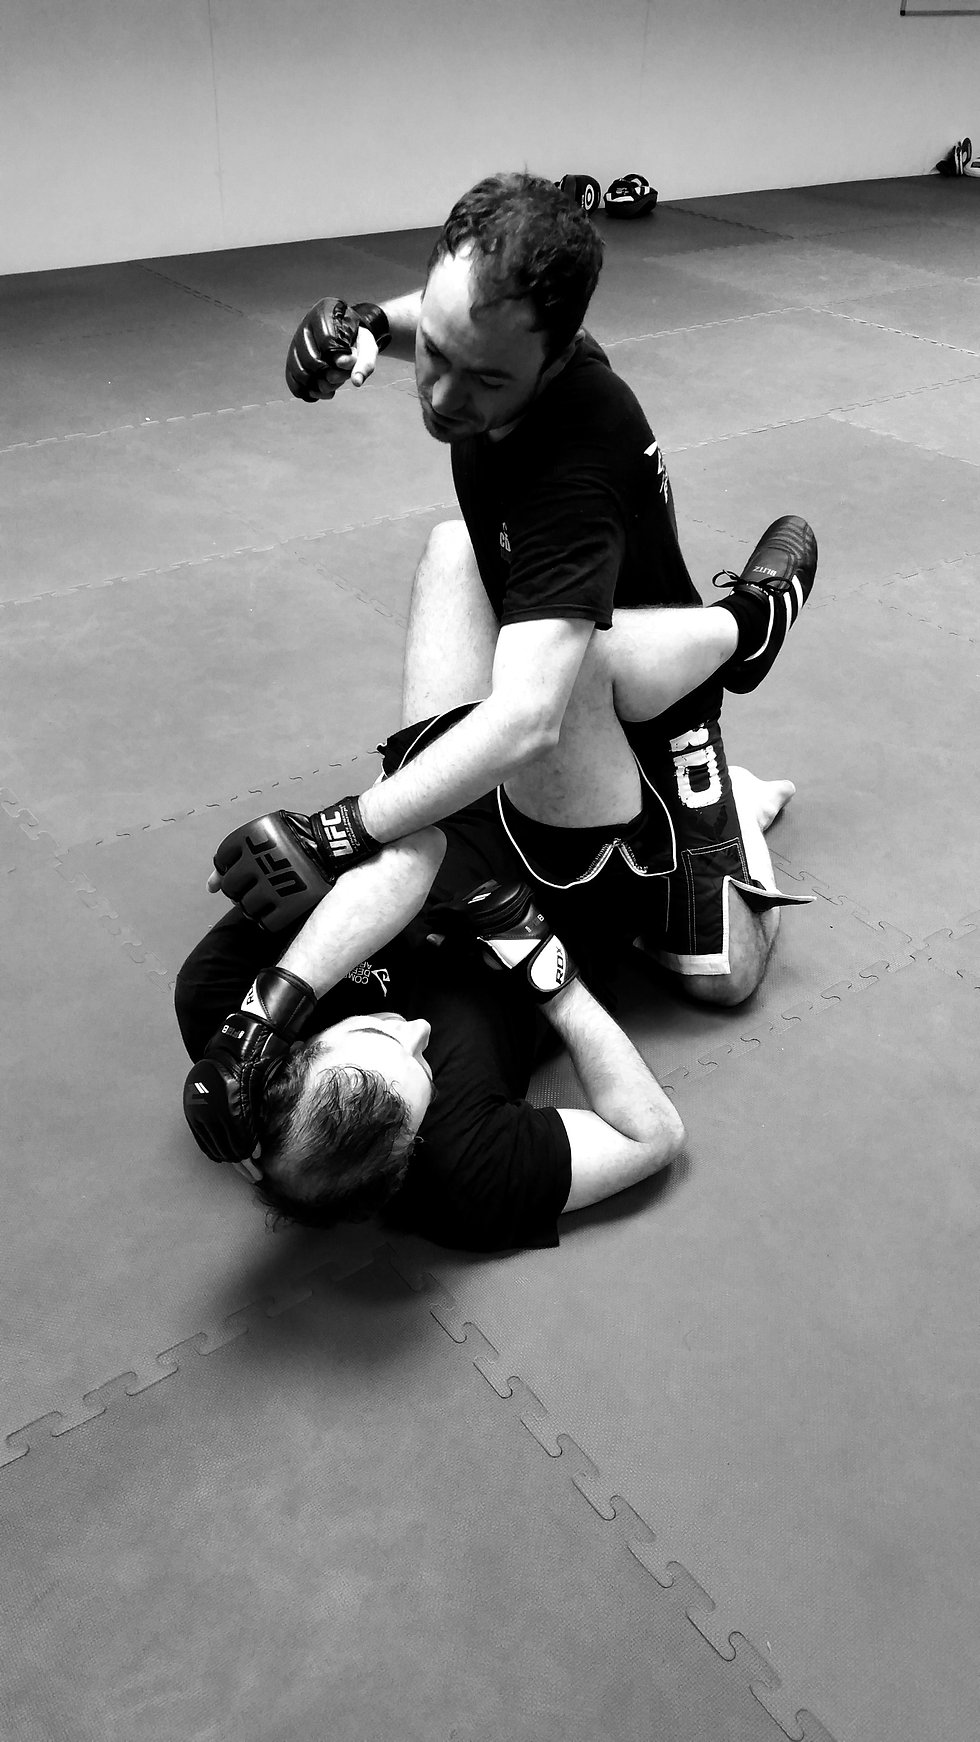 Two students practcing ground fighting in guard position